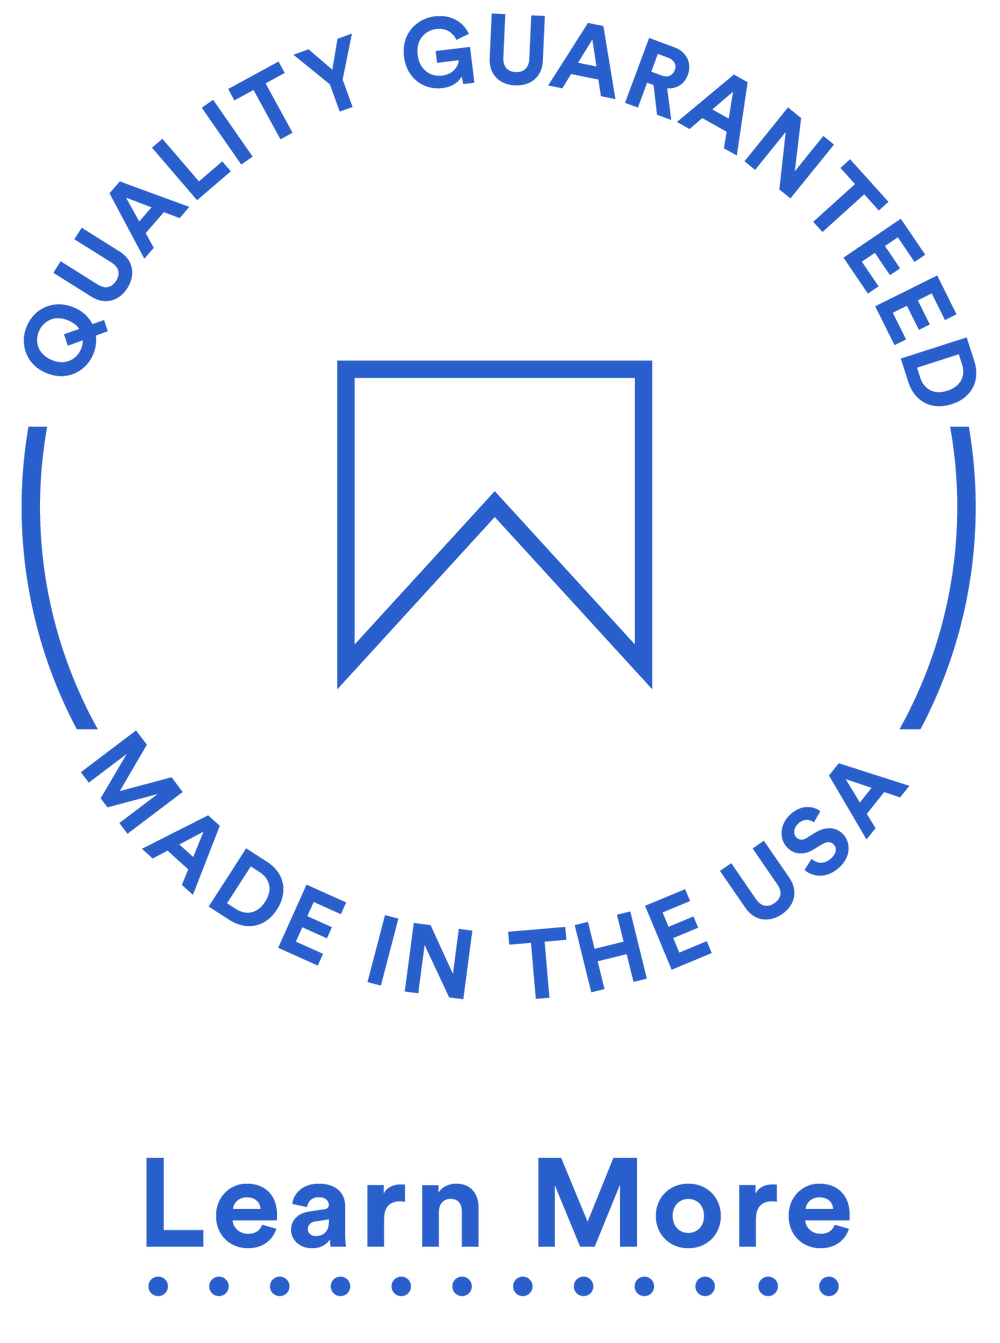 QUALITY GUARANTEED MADE IN THE USA